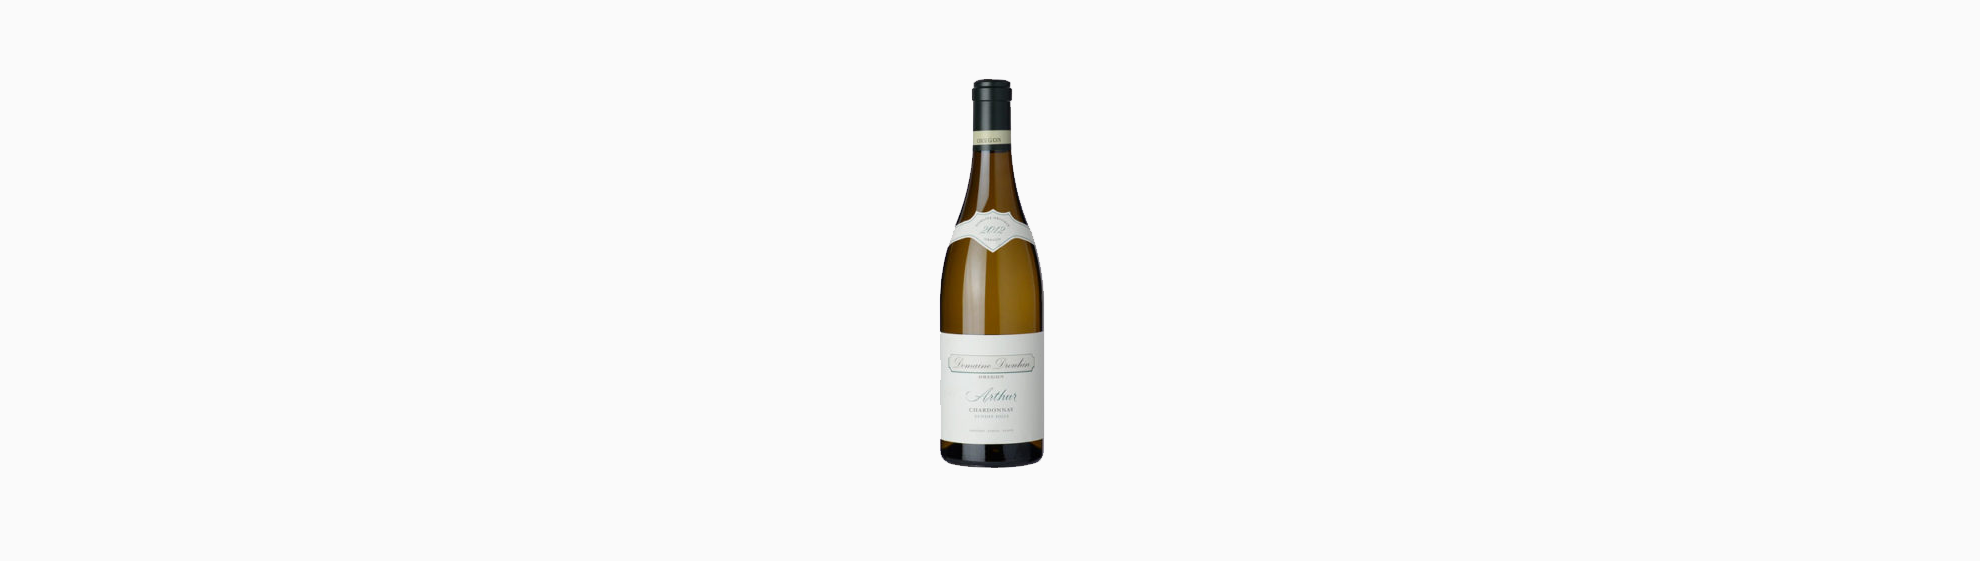 Wine bottle of Domaine Drouhin Arthur Chardonnay 2017 (Dundee Hills)